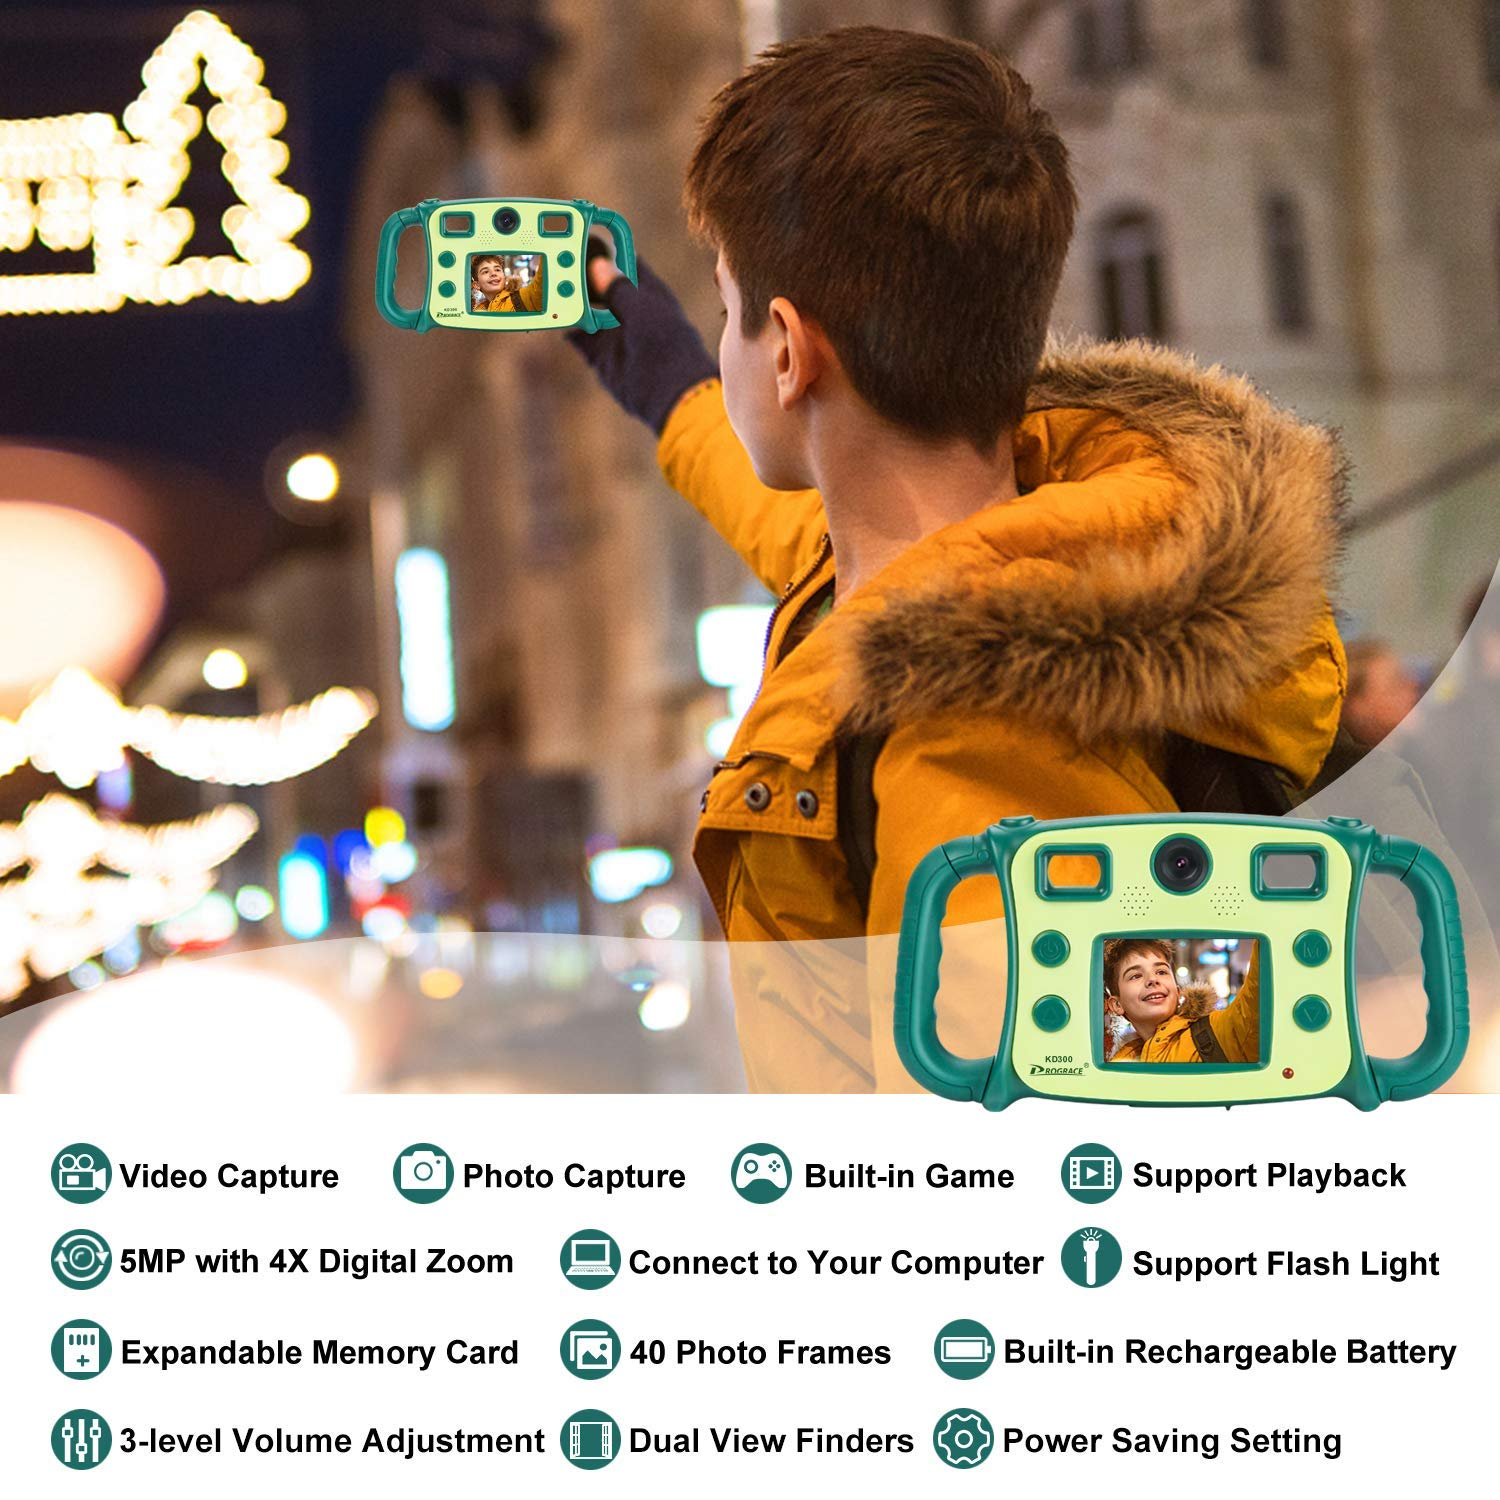 Prograce Kids Camera Dual Selfie Camera 1080P HD Video Recorder Digital Action Camera Camcorder for Boys Girls Gifts 2.0'' LCD Screen with 4X Digital Zoom and Funny Game(Green) by Prograce (Image #4)